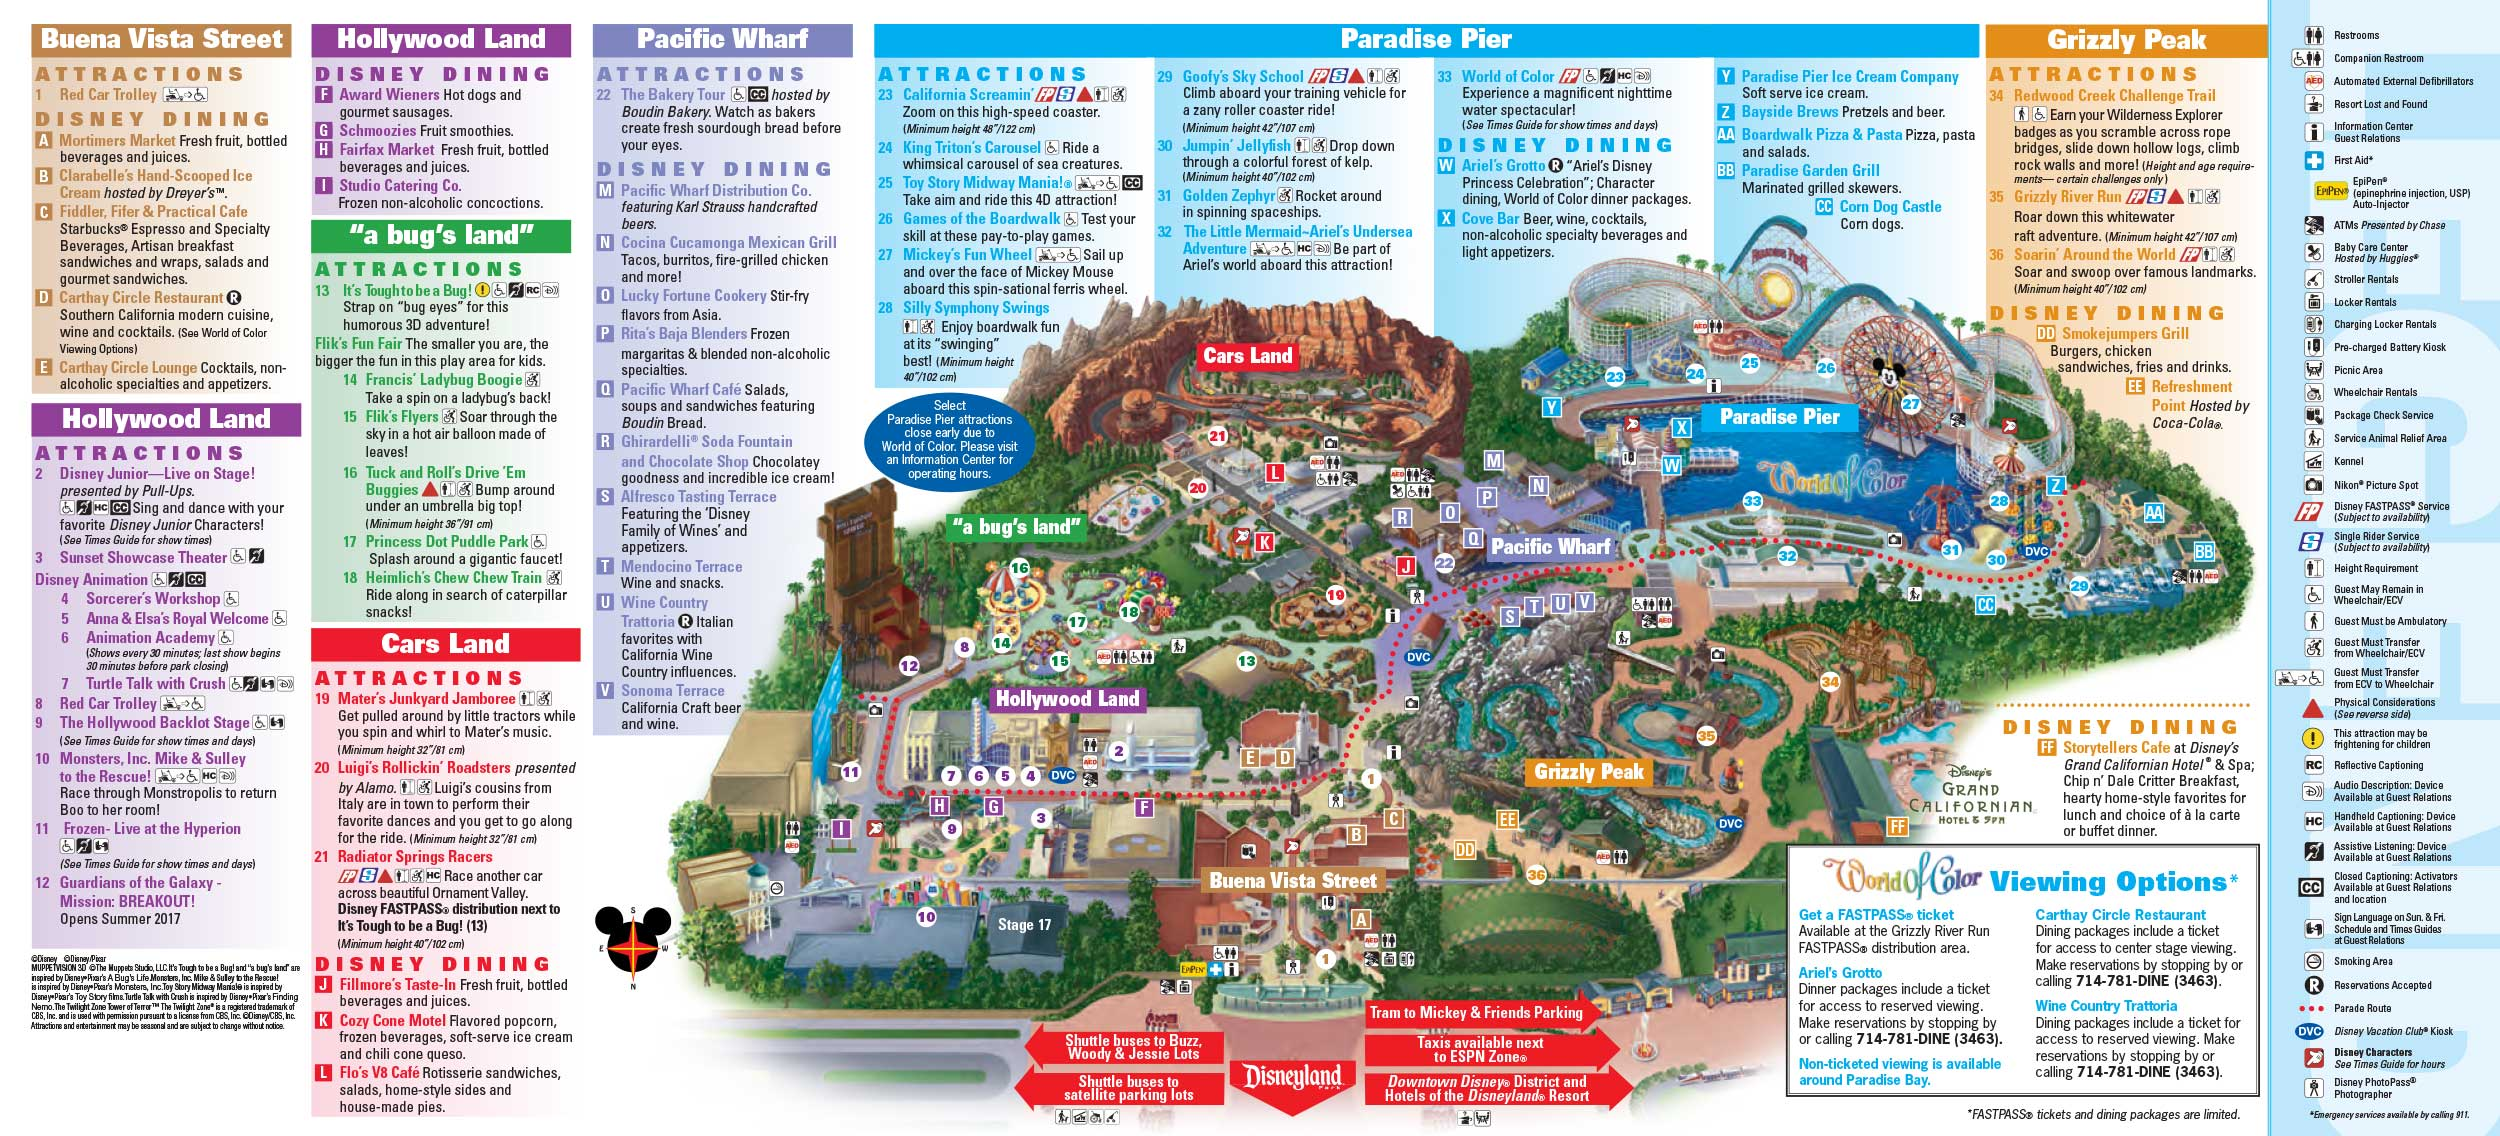 Disneyland Locations World Map.Disneyland Park Map In California Map Of Disneyland